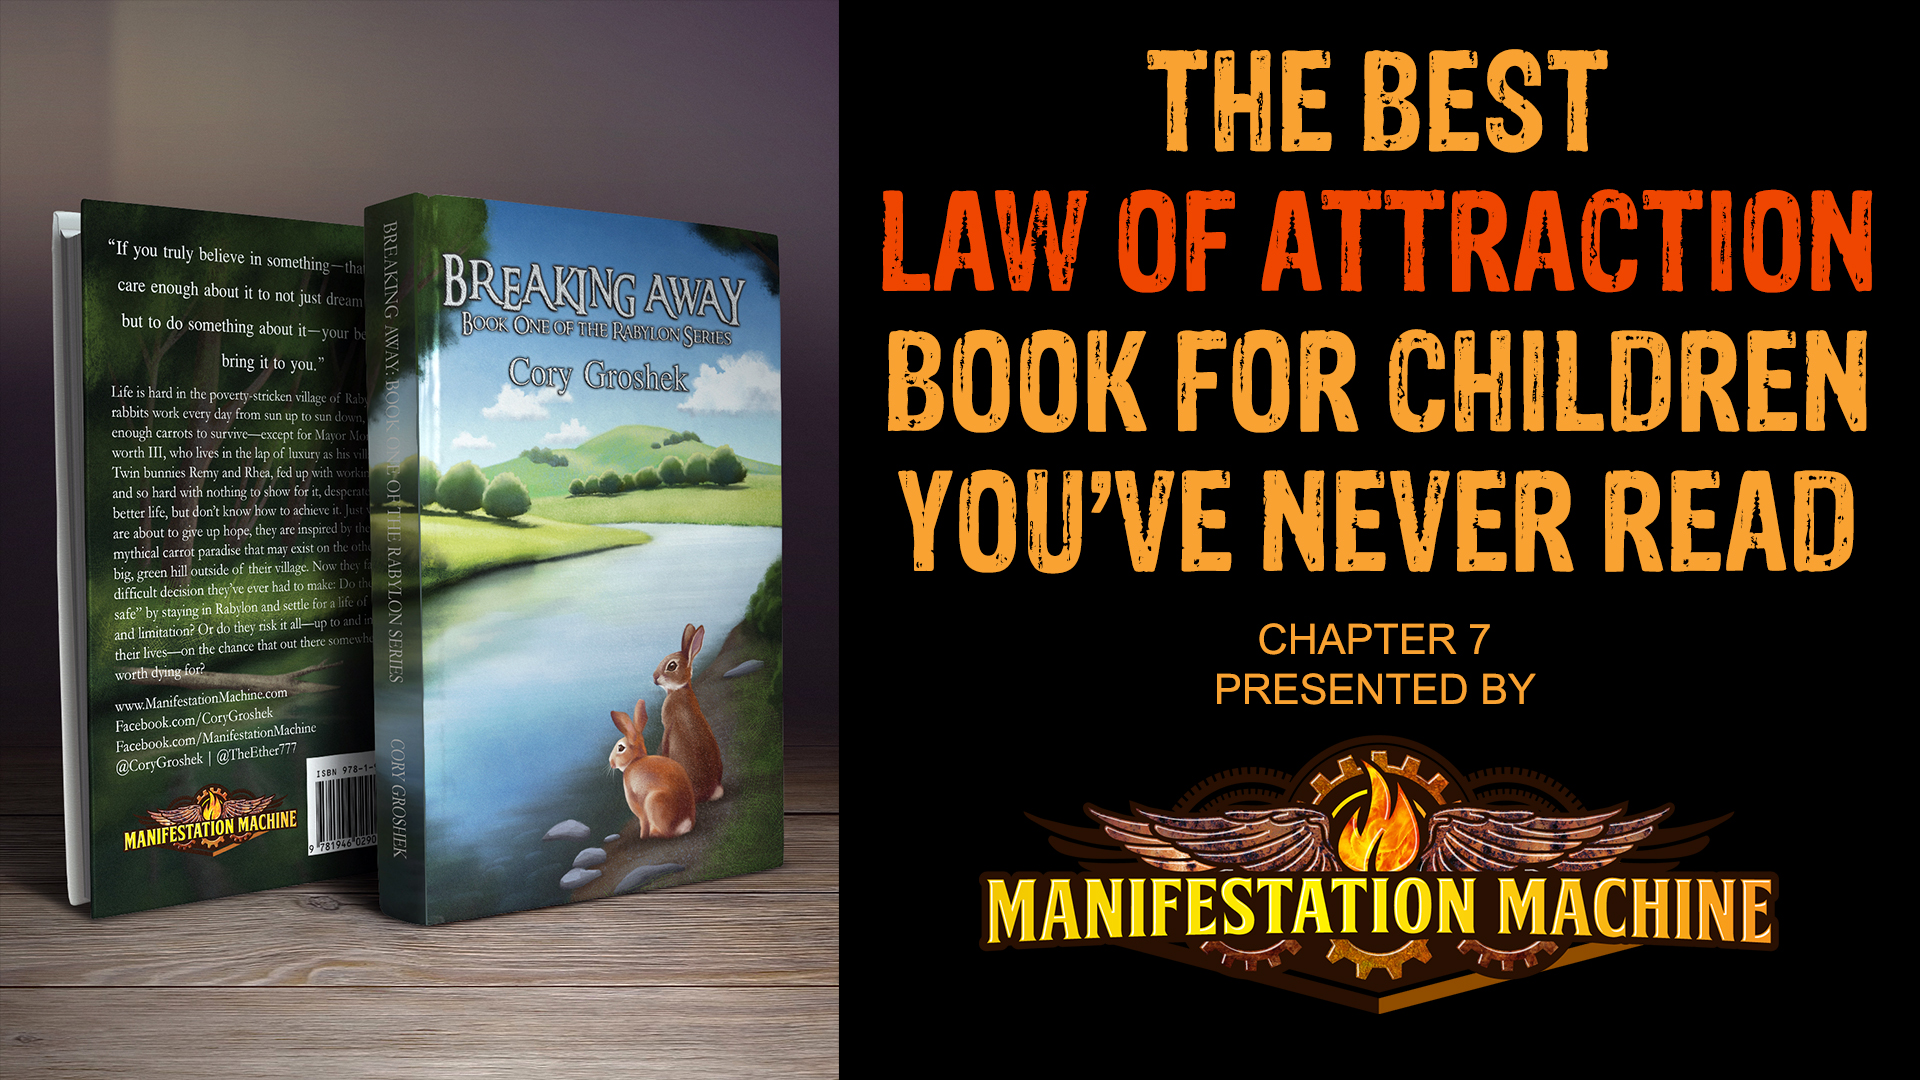 The Best Law of Attraction Book for Children You've Never Read (Chapter 7)